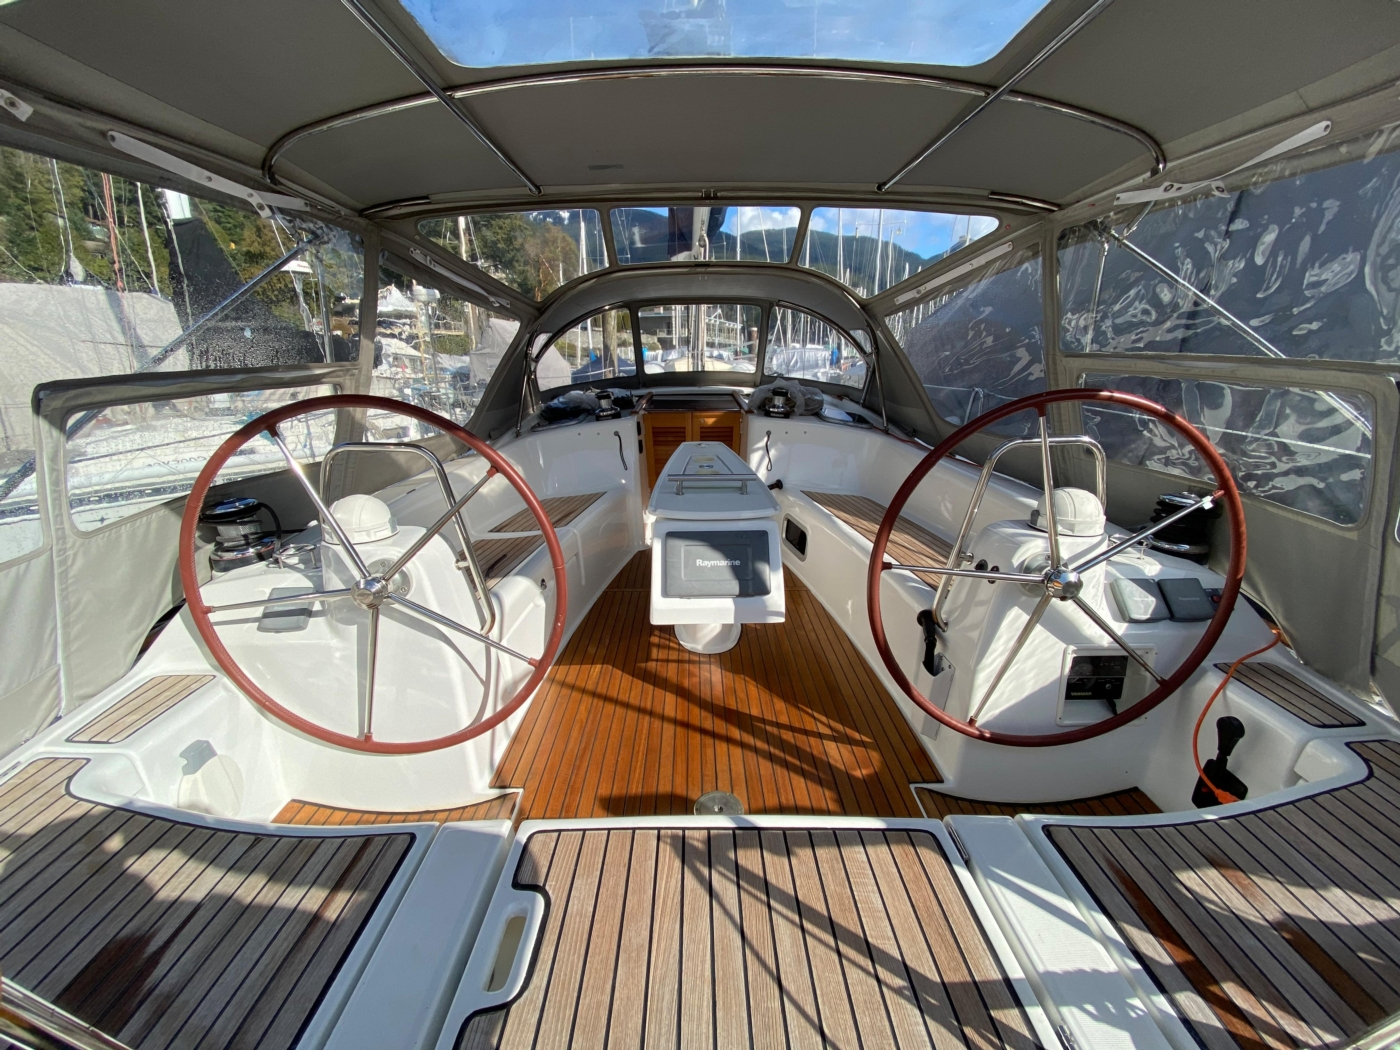 2010 Beneteau Oceanis 40, Cockpit Looking Forward